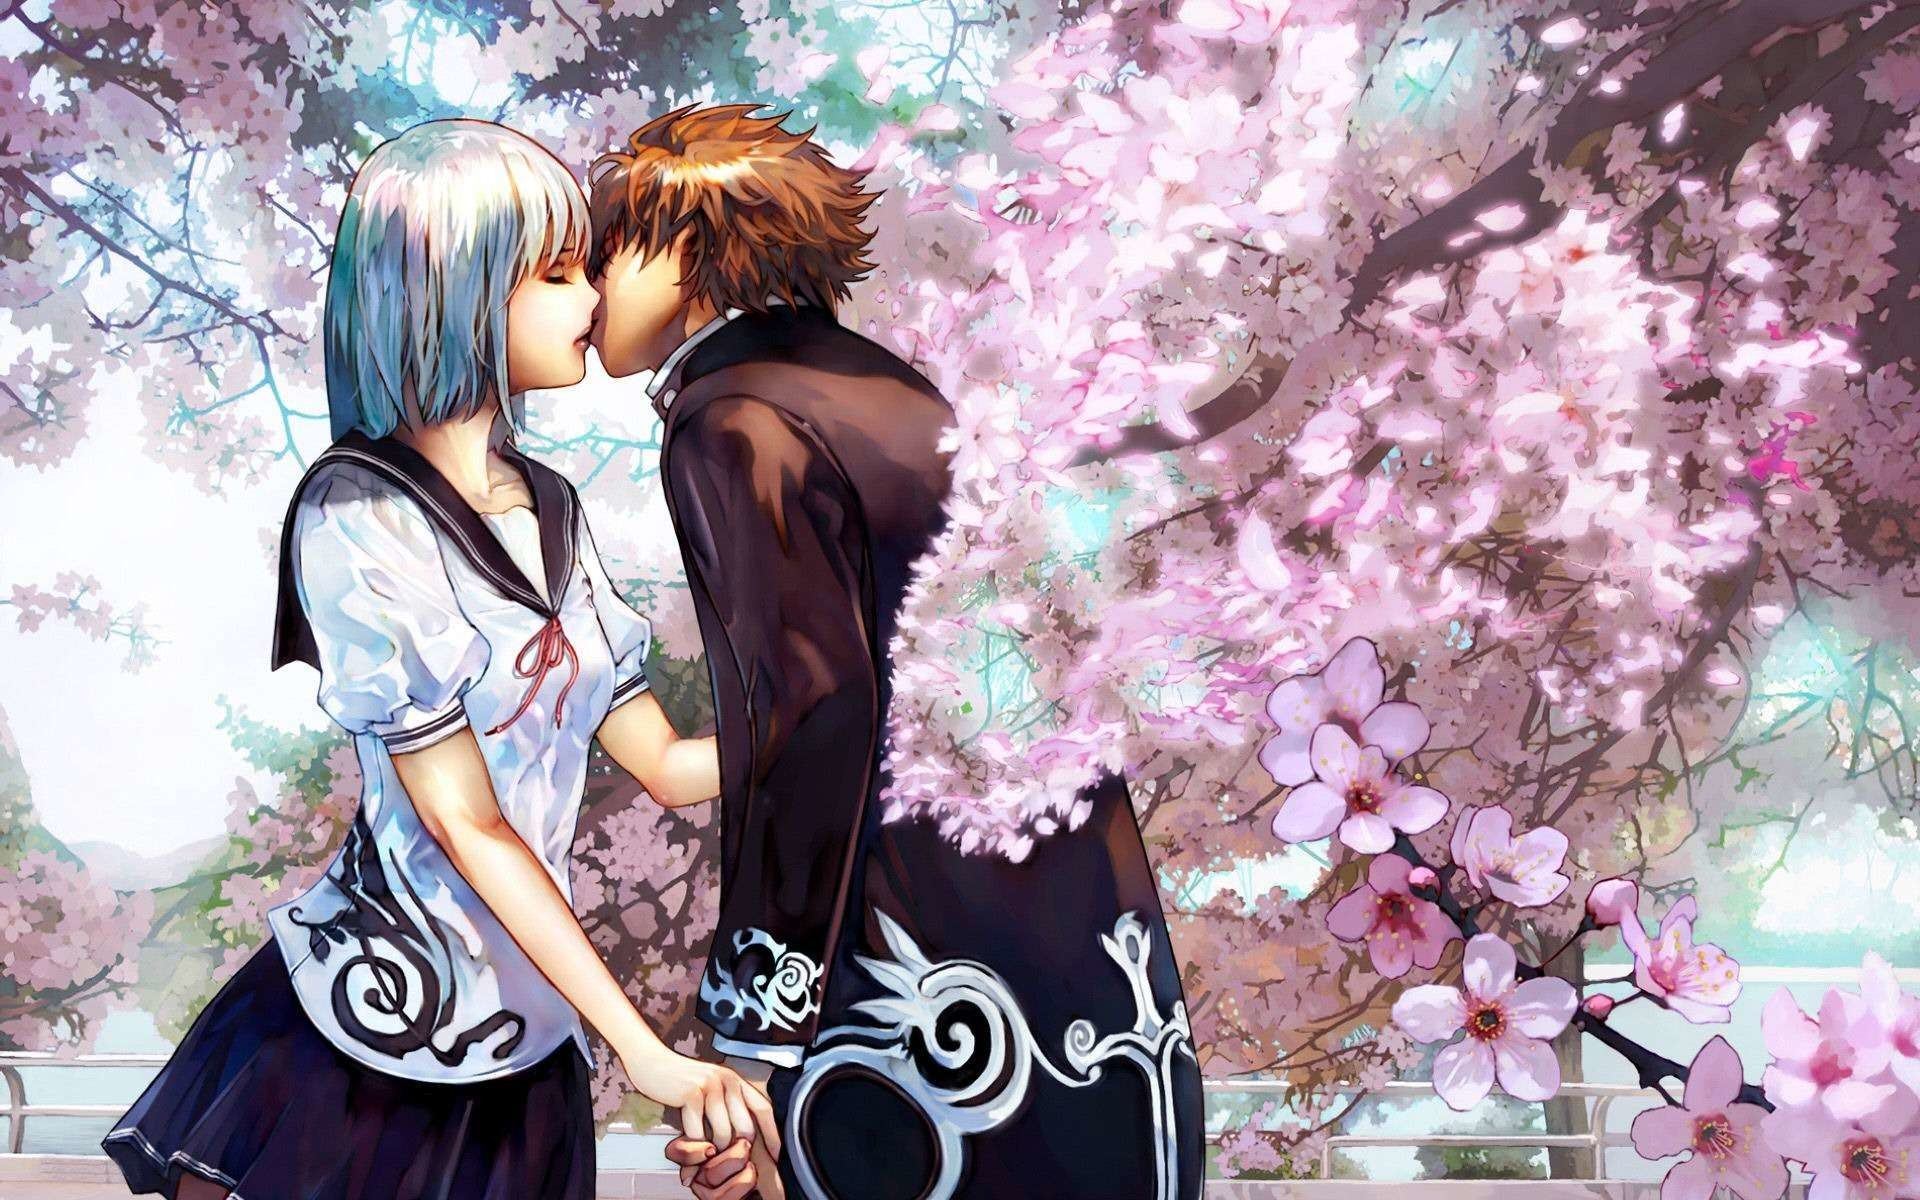 1920x1200 Cute Anime Couple Kiss HD Wallpaper